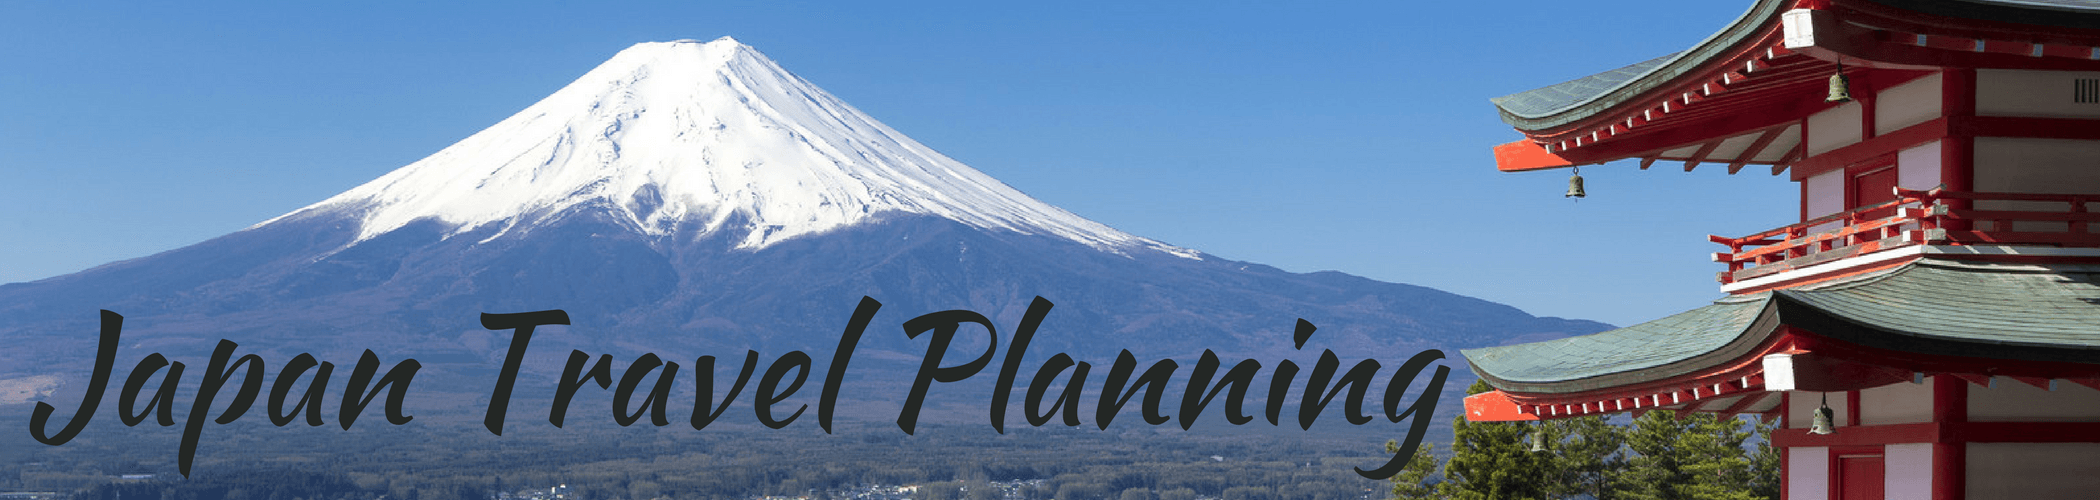 Japan Travel Planning - Everything you need to plan your trip to Japan